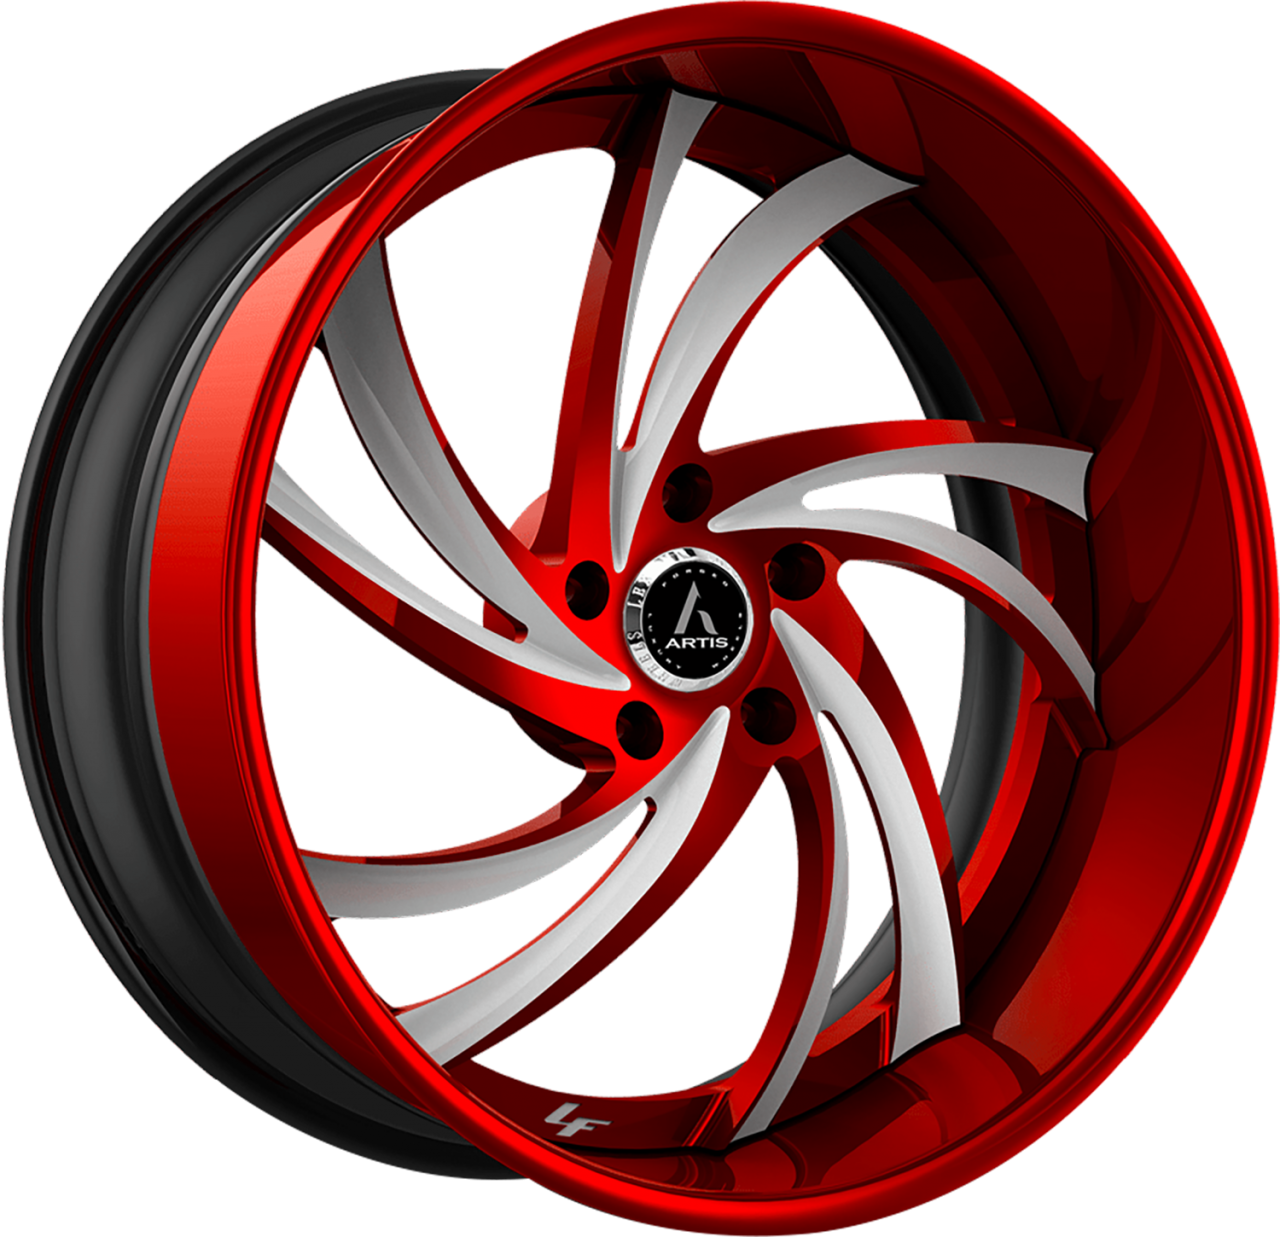 Artis Forged Twister-M wheel with Custom Red and White finish